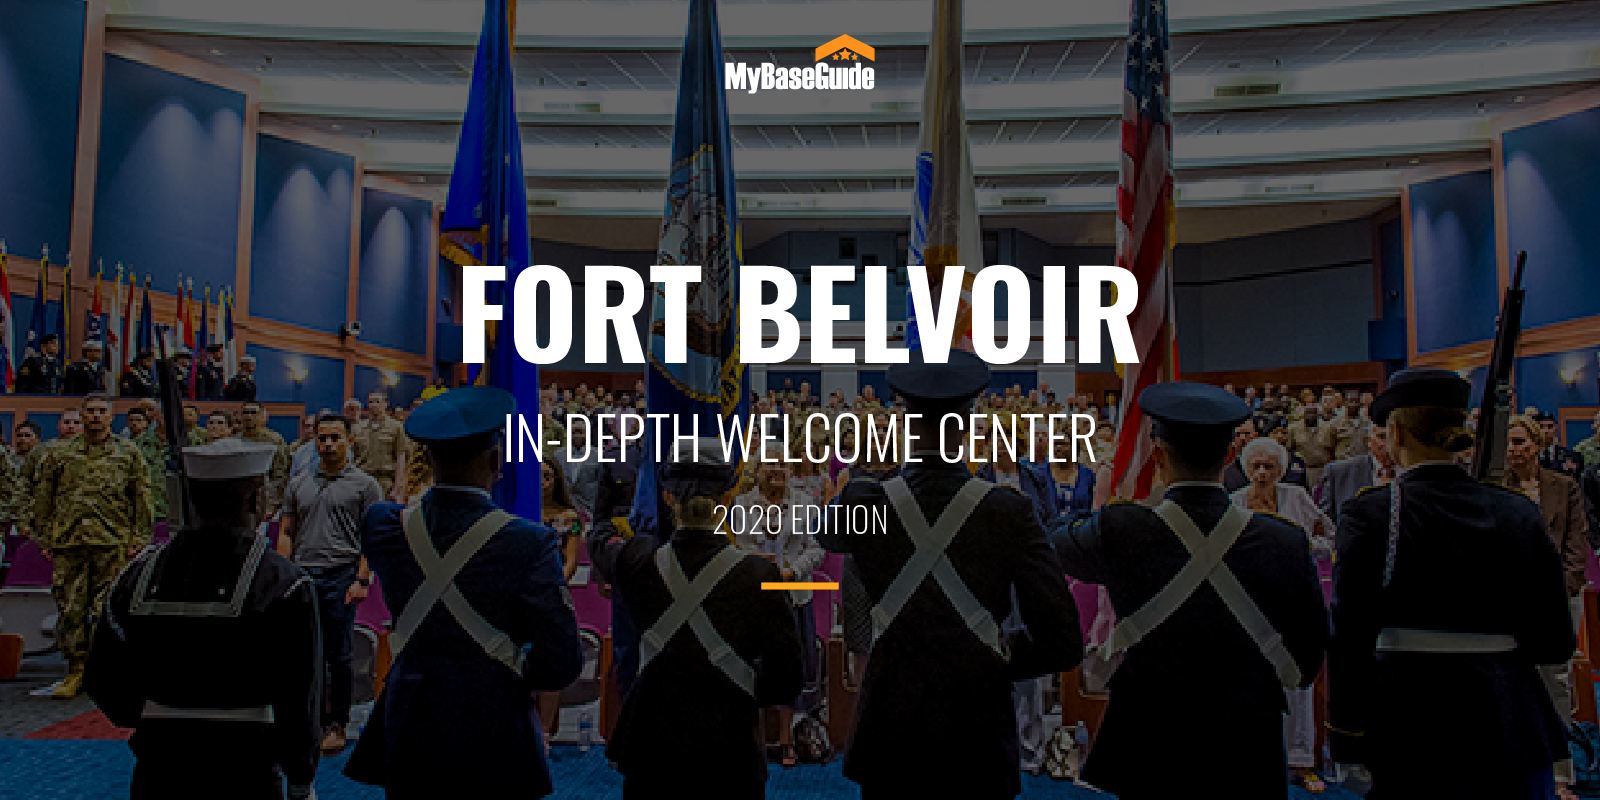 Fort Belvoir: In-Depth Welcome Center